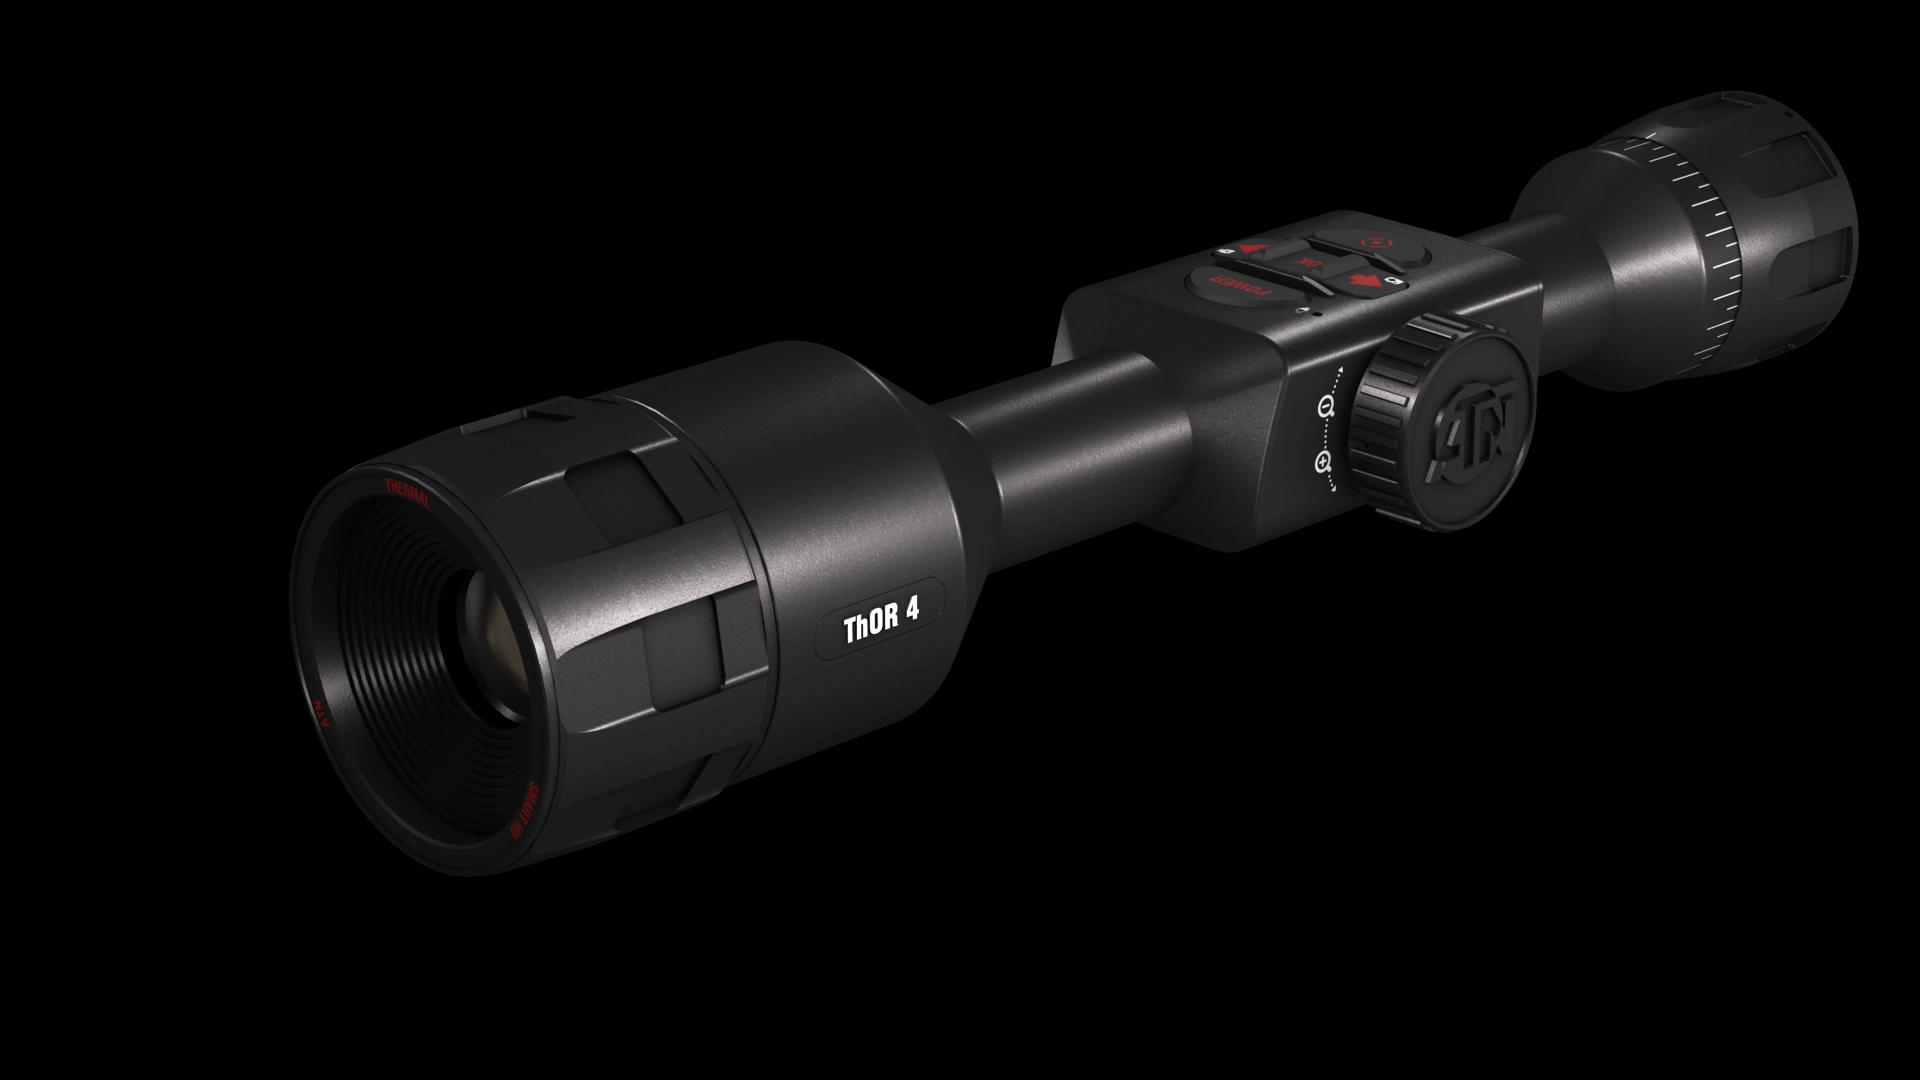 ATN Thor 4 640 1.5-15x 24×19 Degrees FOV Black Thermal Scope